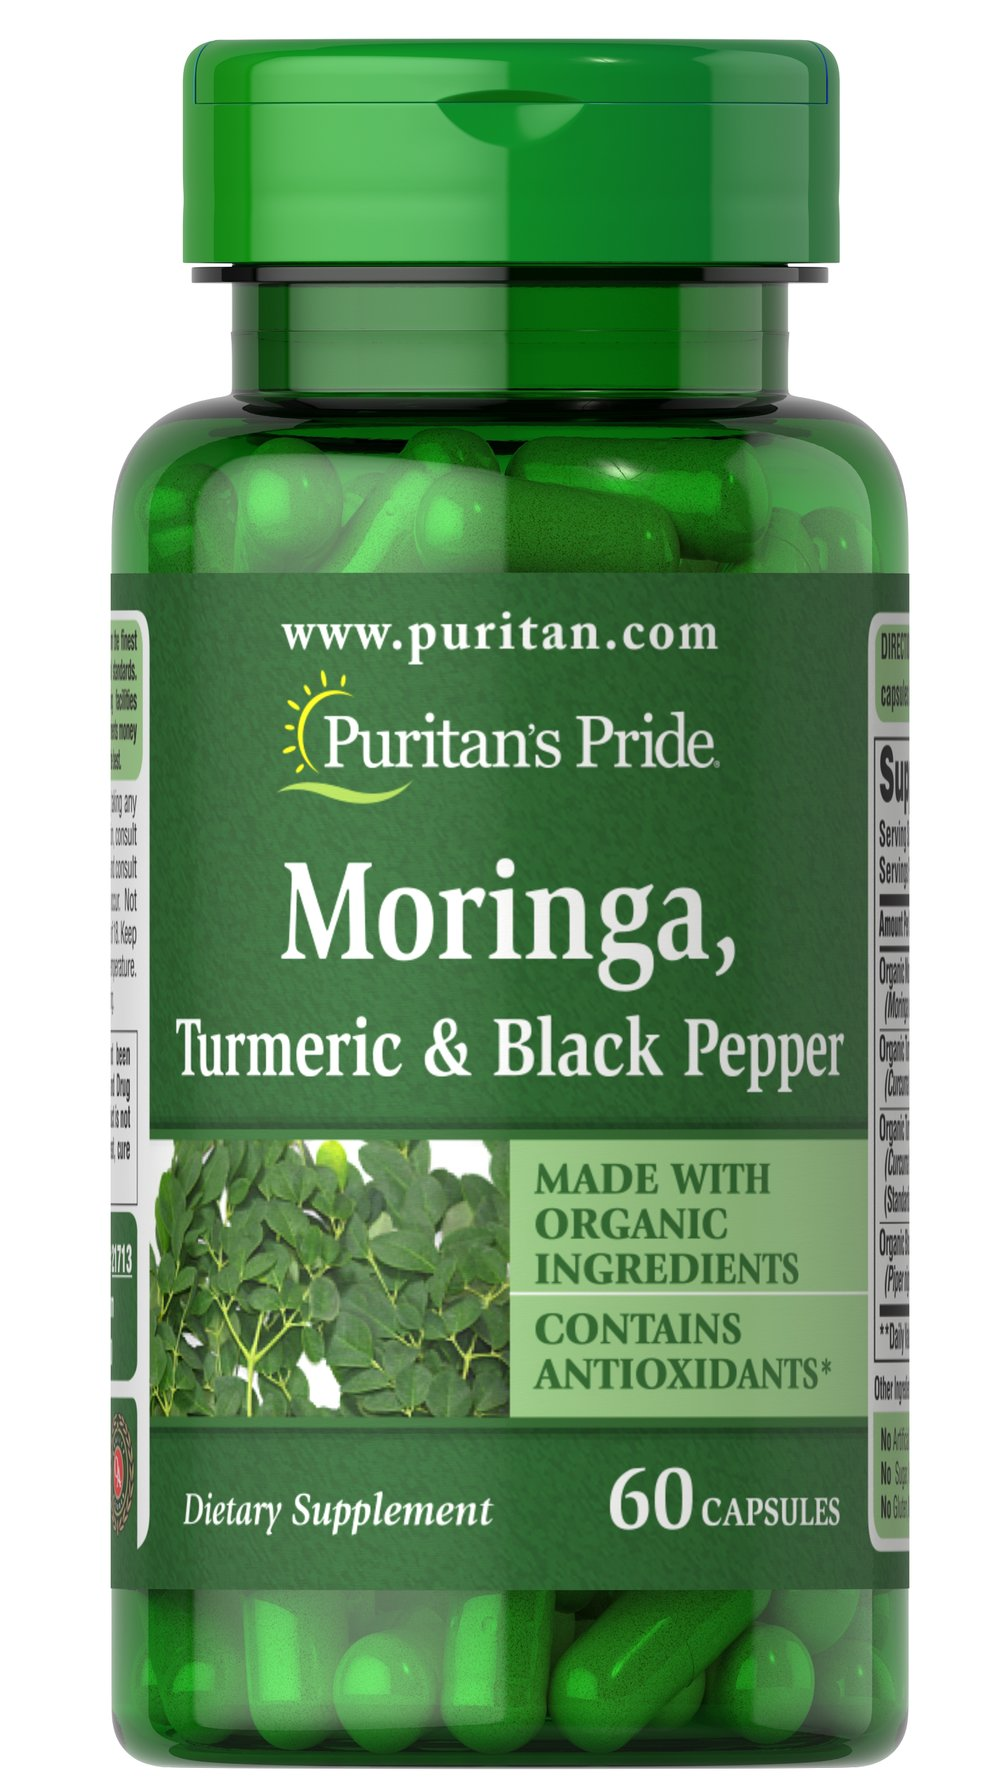 Moringa, Turmeric & Black Pepper